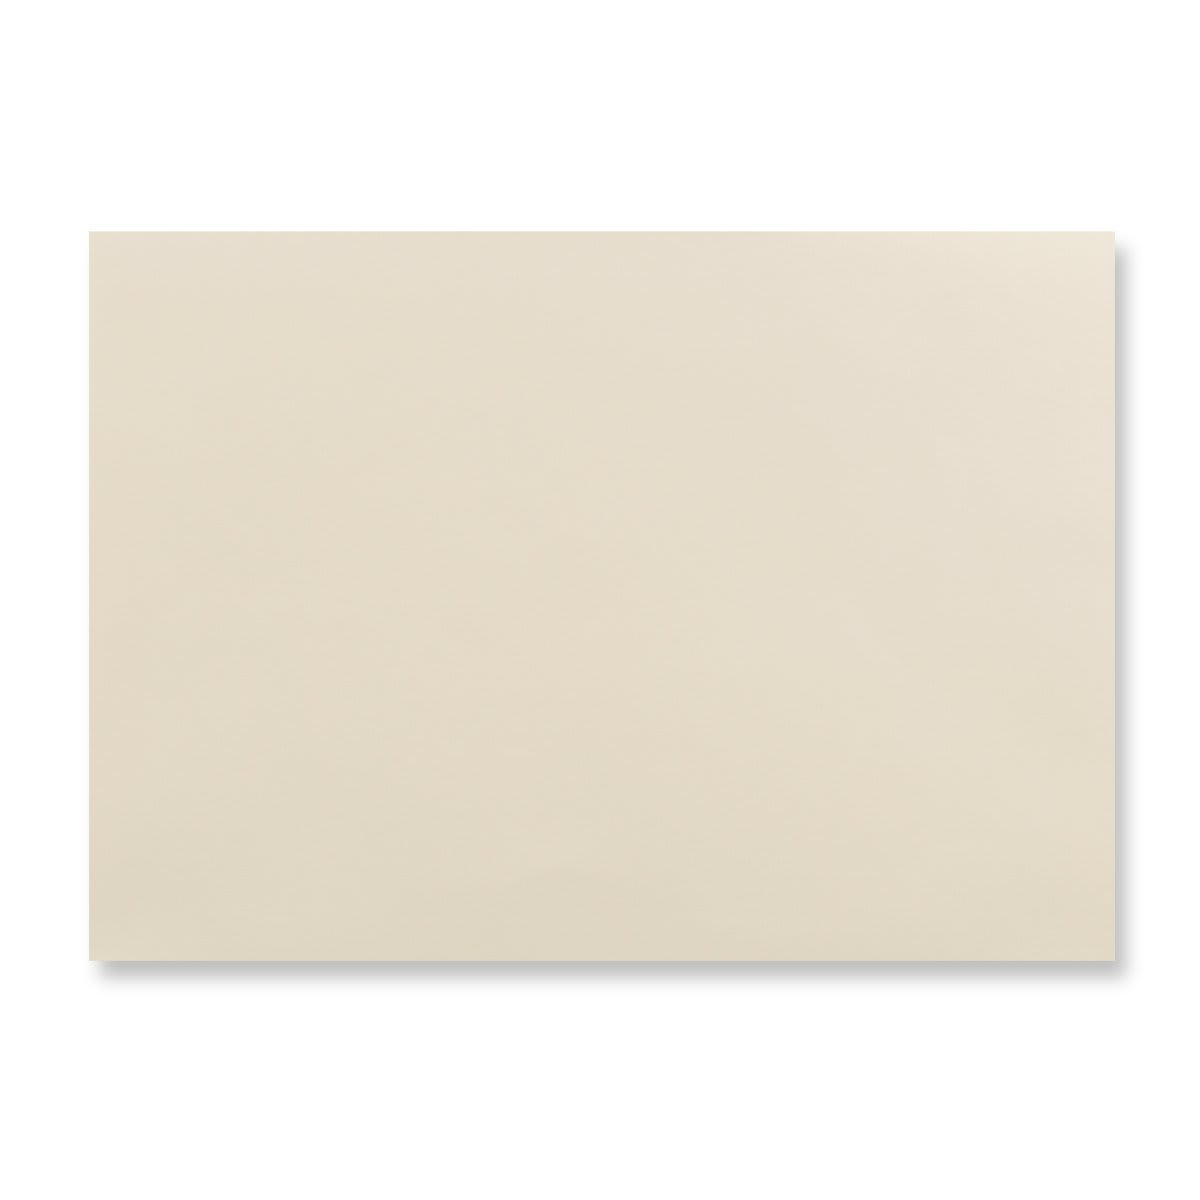 C6 IVORY V-FLAP PEEL AND SEAL ENVELOPES